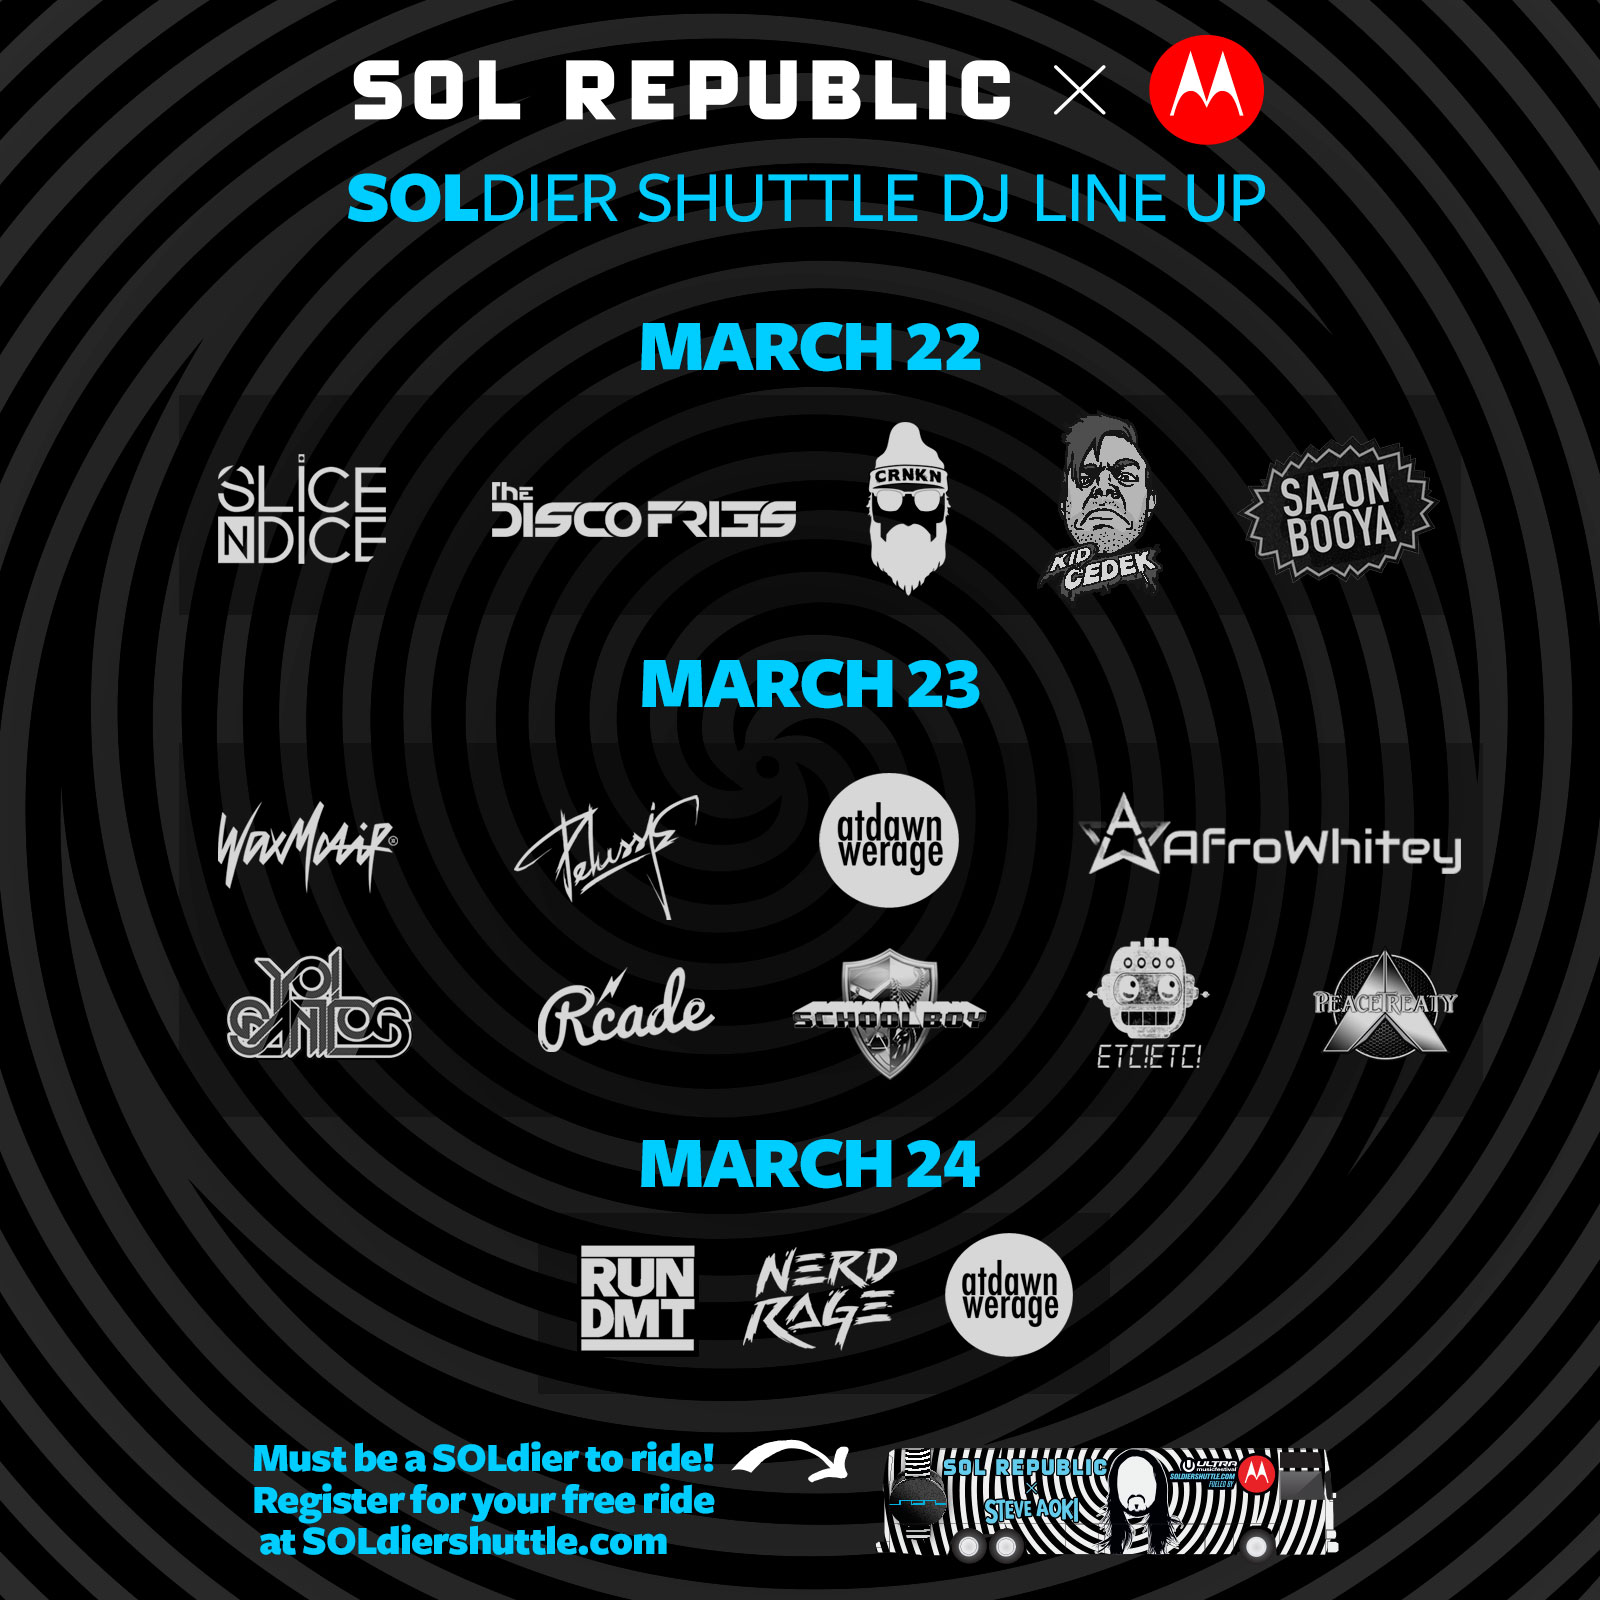 SOL REPUBLIC ULTRA Shuttle DJ LIne Up